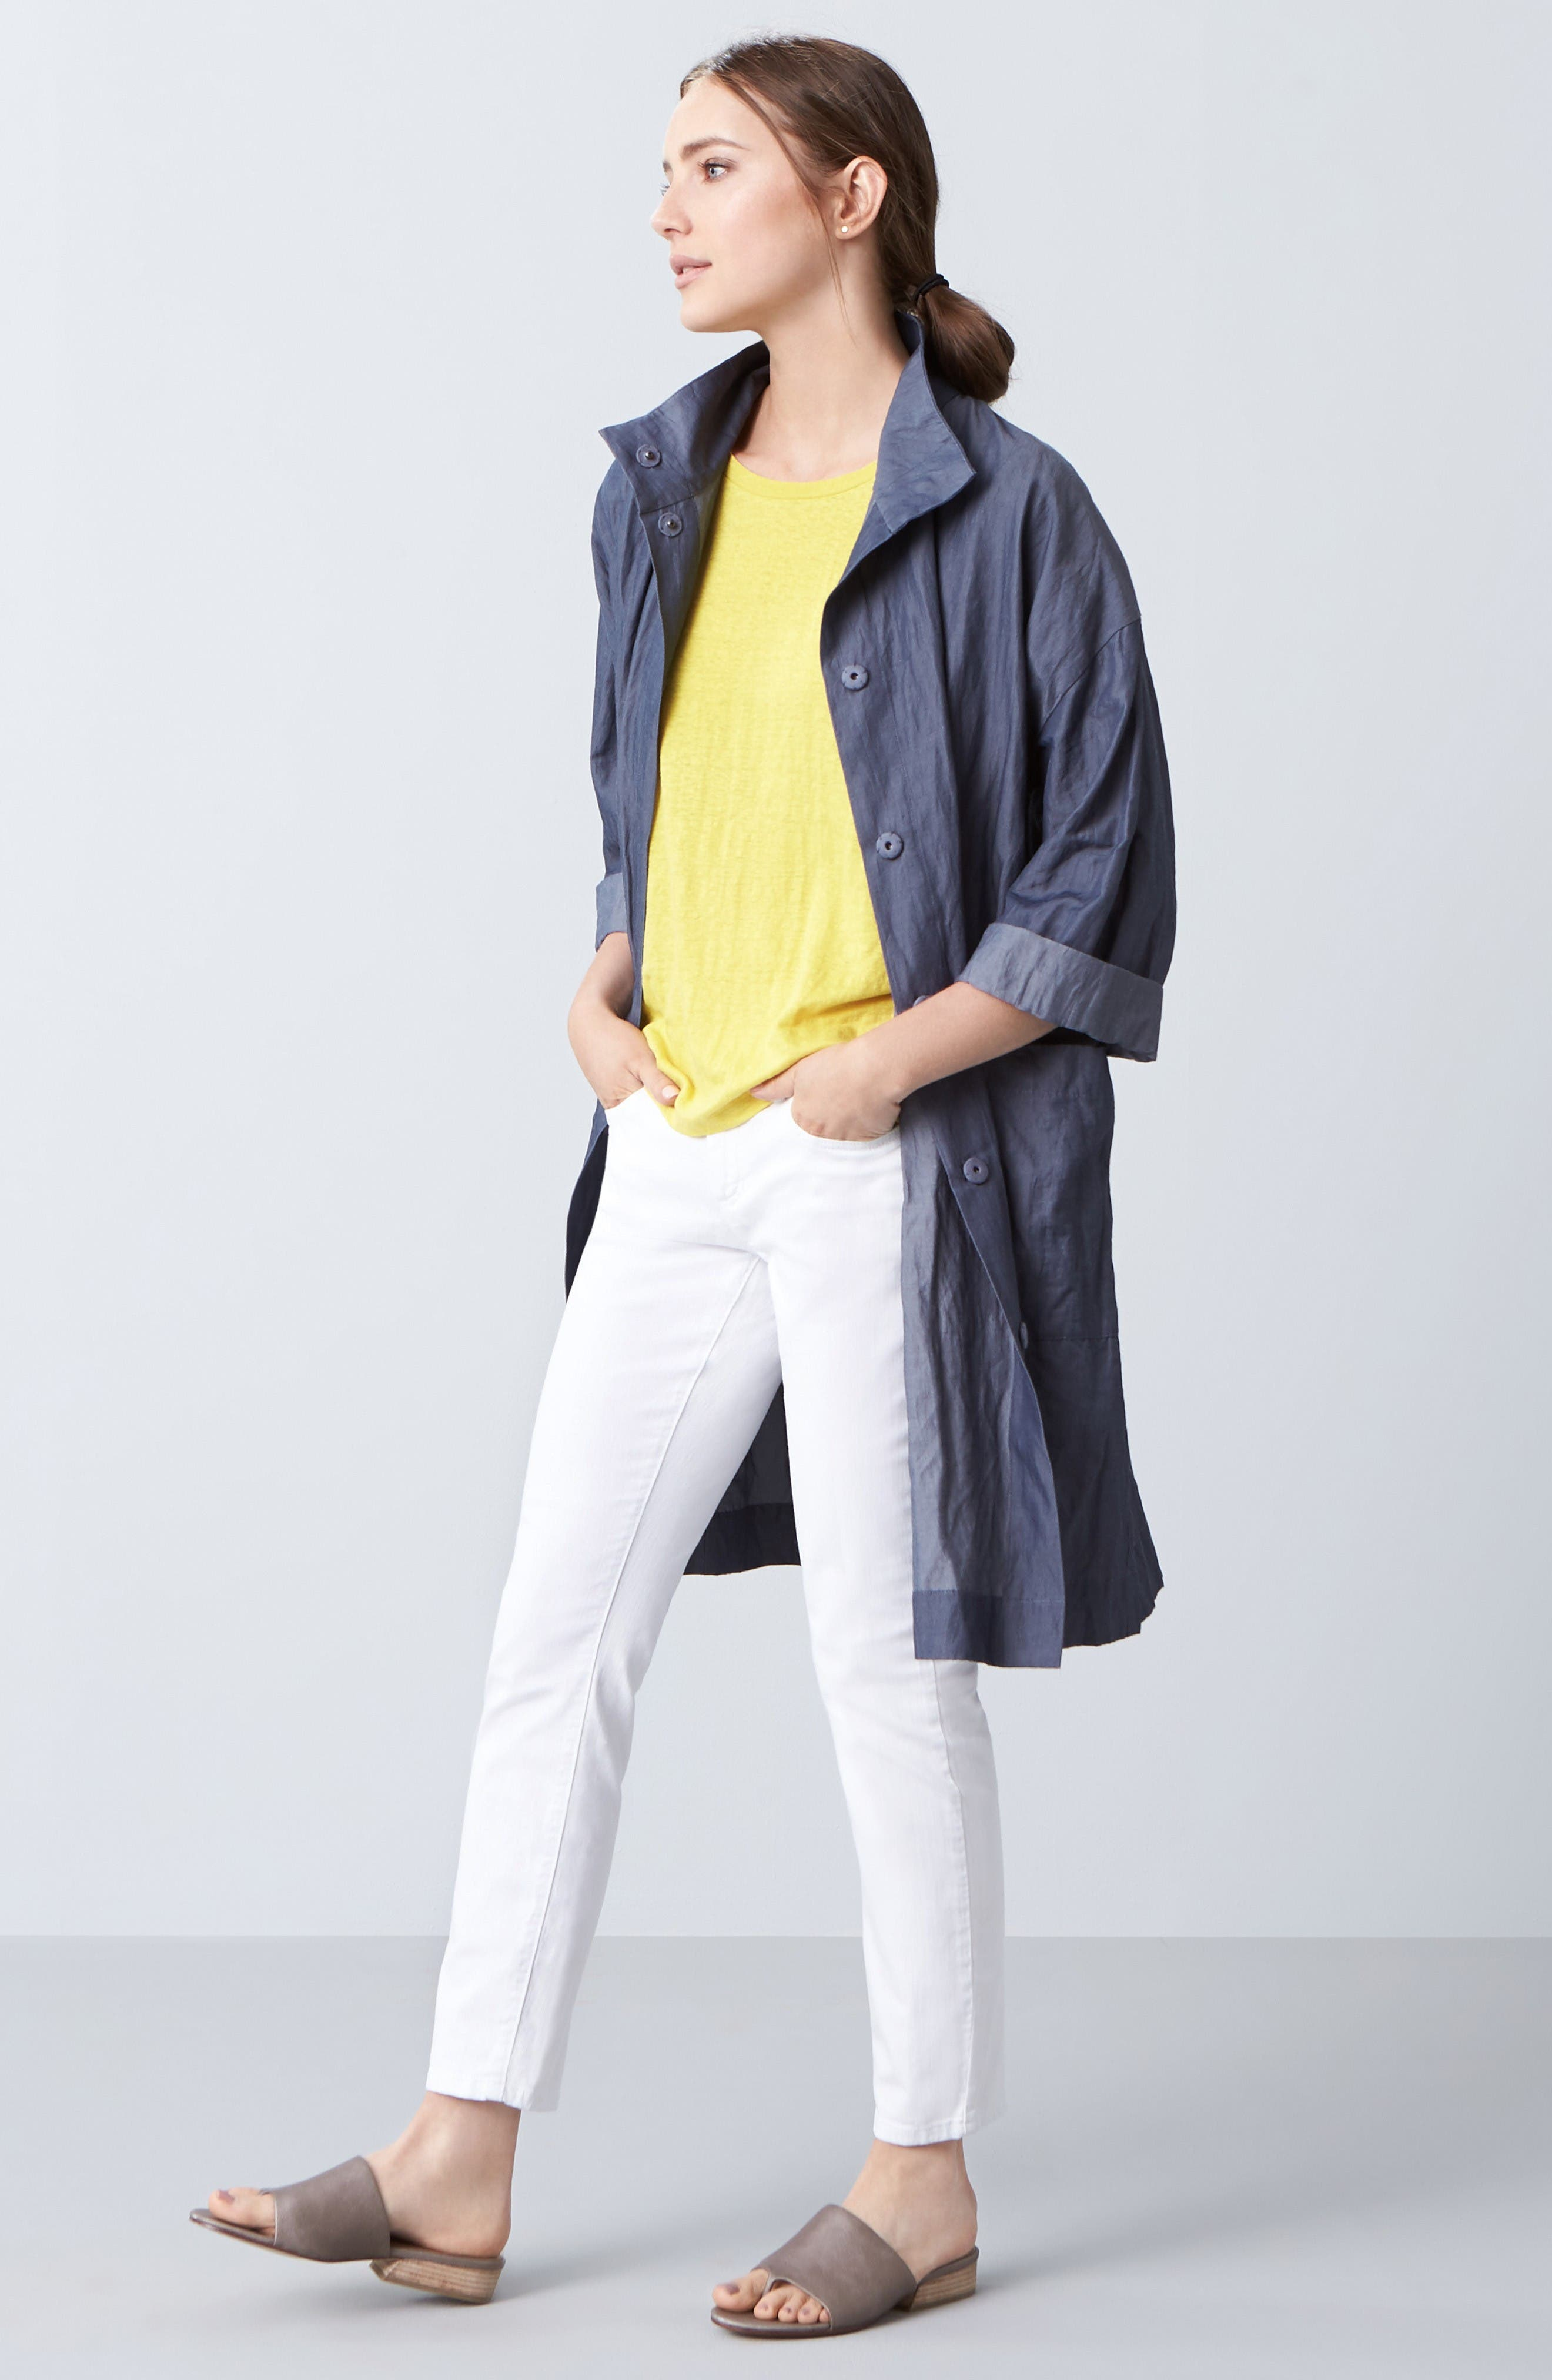 Eileen Fisher Coat, Tee & Skinny Jeans Outfit with Accessories